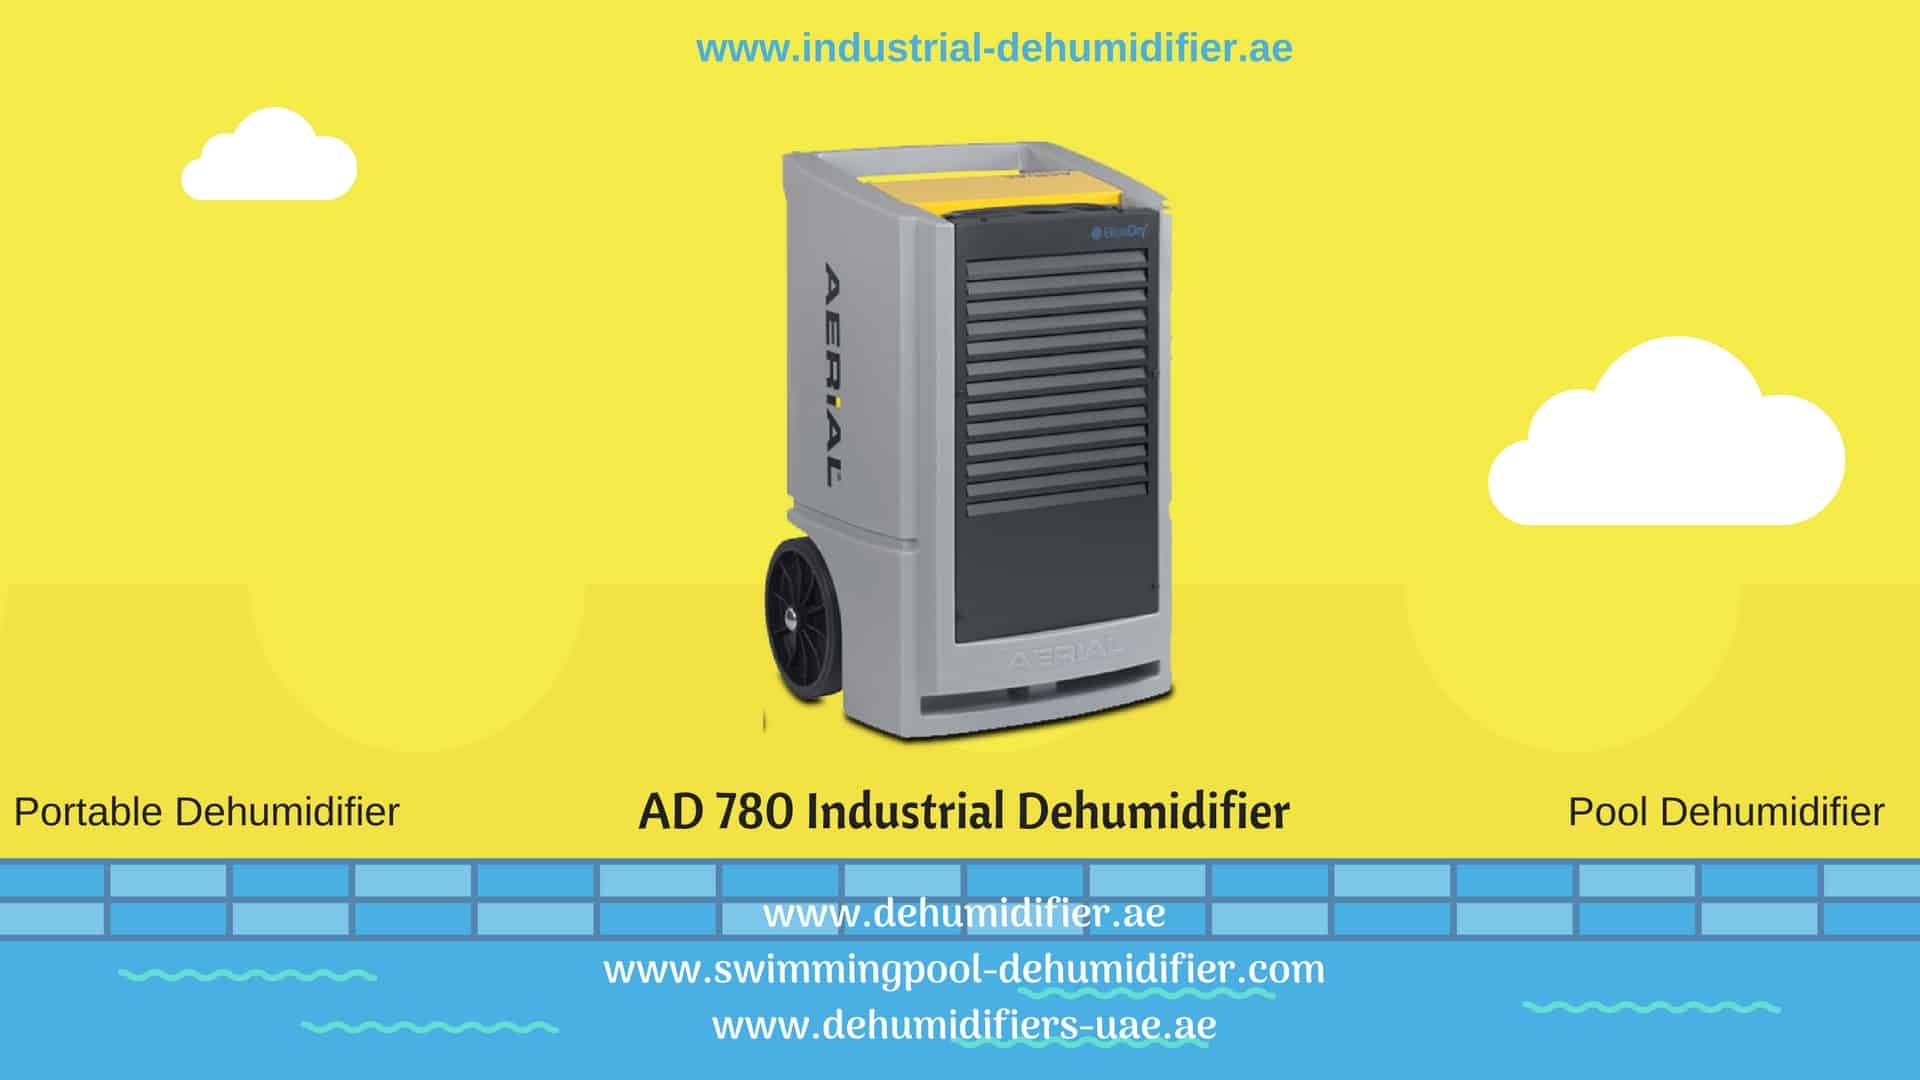 AD780 Industrial Dehumidifier review.